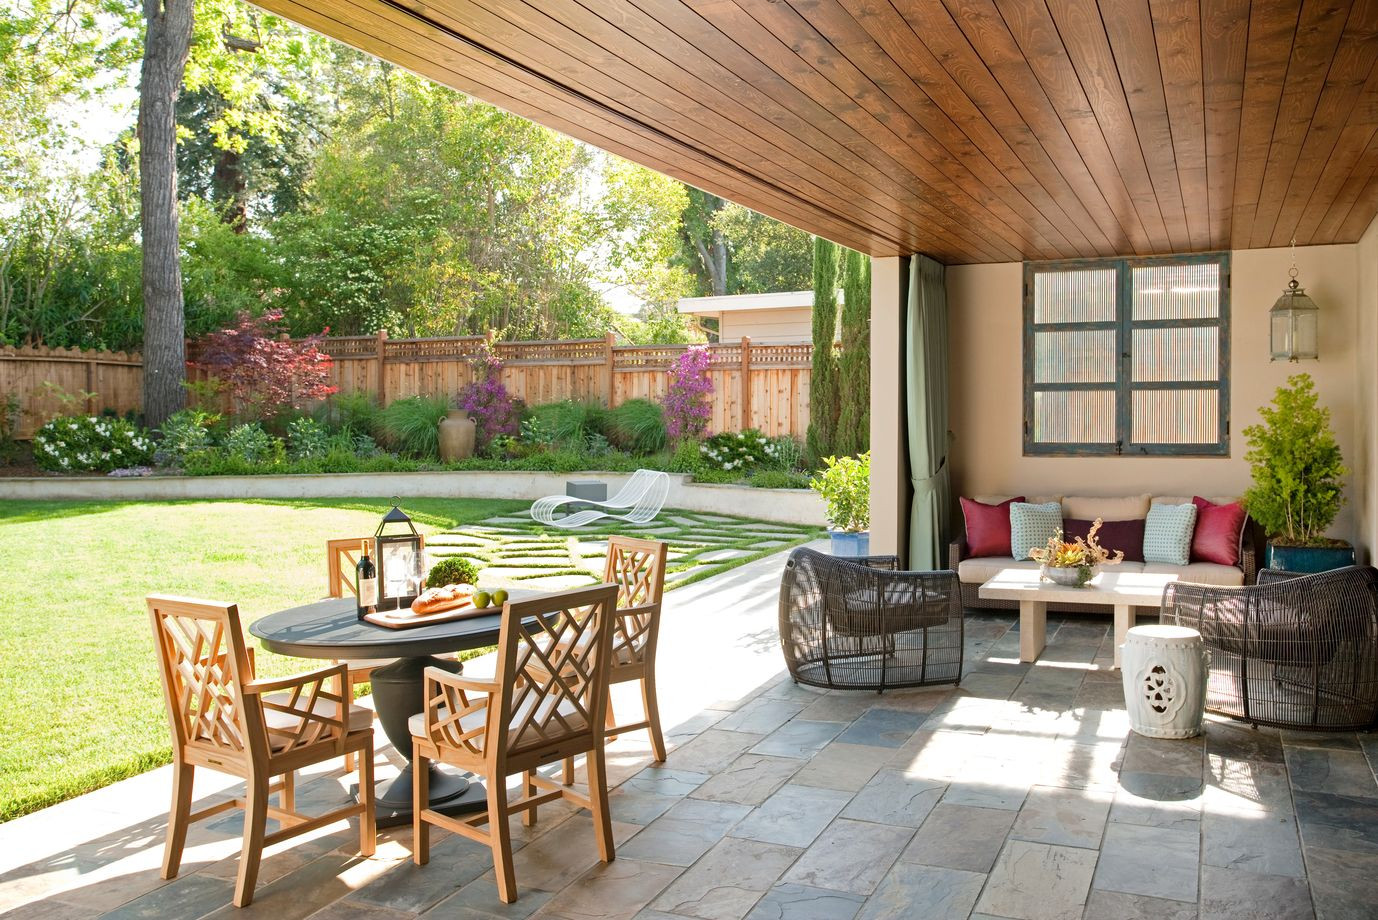 Outdoor Living Space Ideas  Outdoor Living 8 Ideas To Get The Most Out Your Space